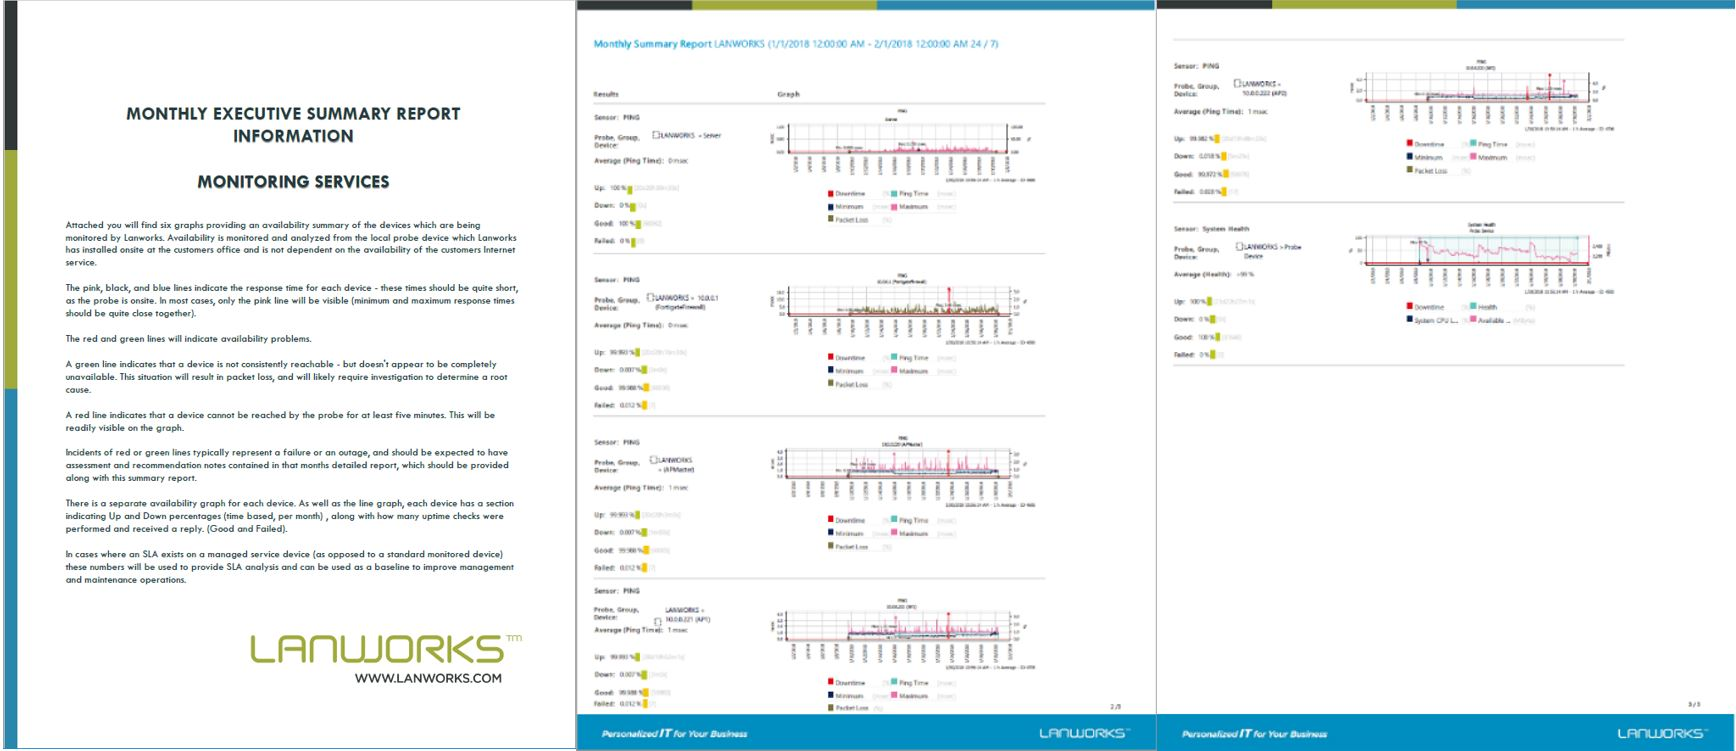 Sample: Lanworks Monthly Monitoring Report- Monitoring solutions